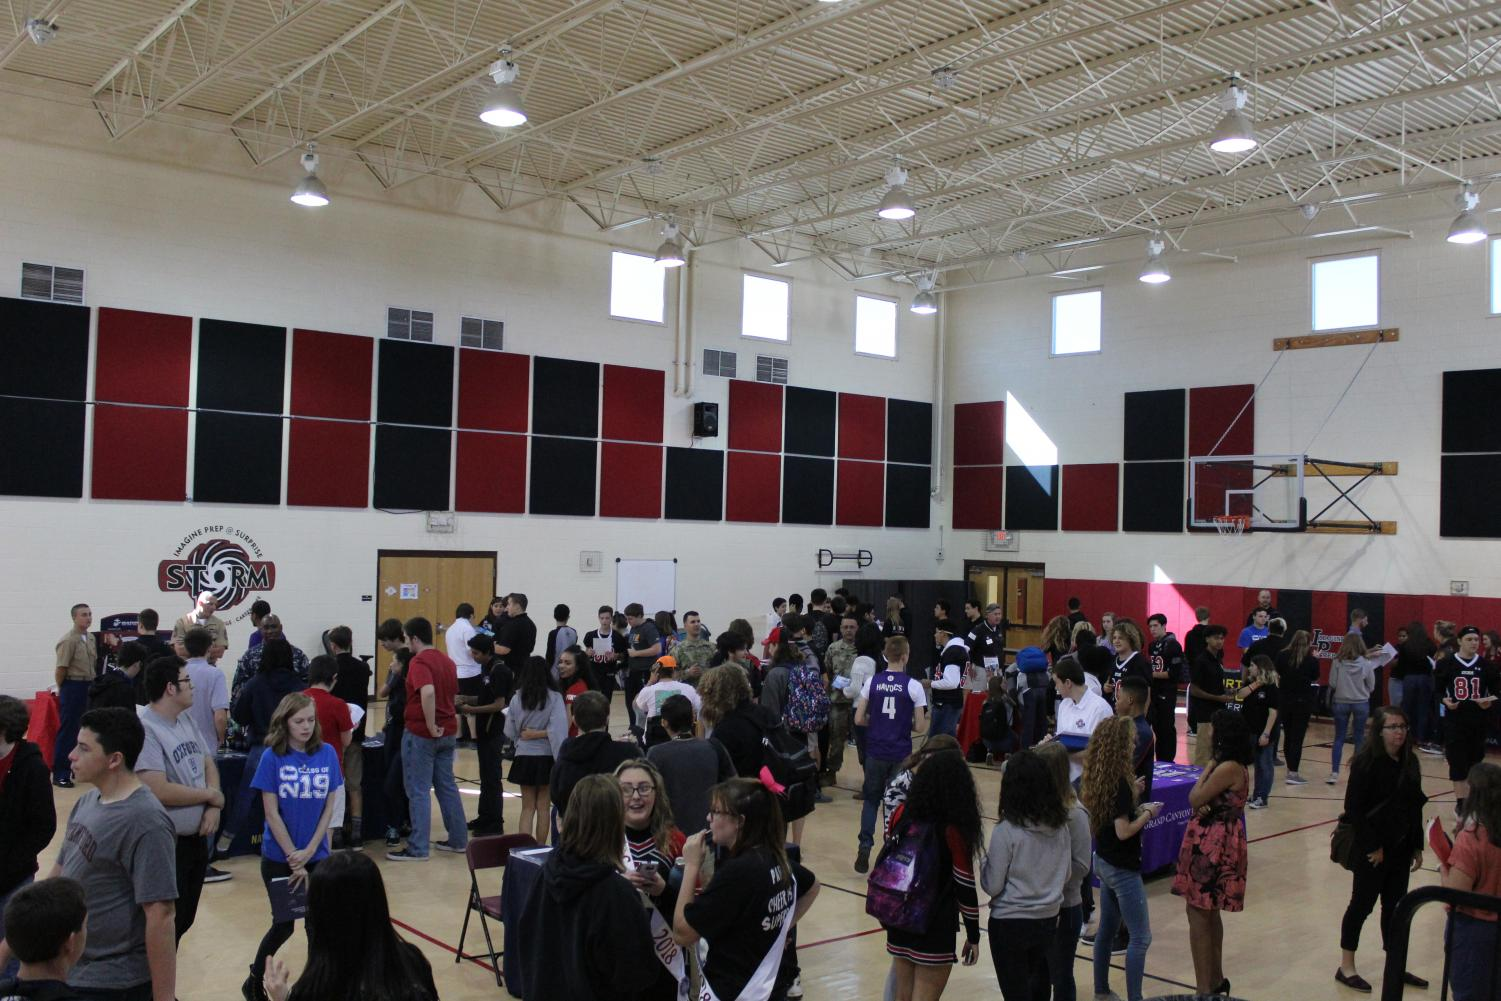 Students gather around in the gym to learn more information about colleges and the armed forces.